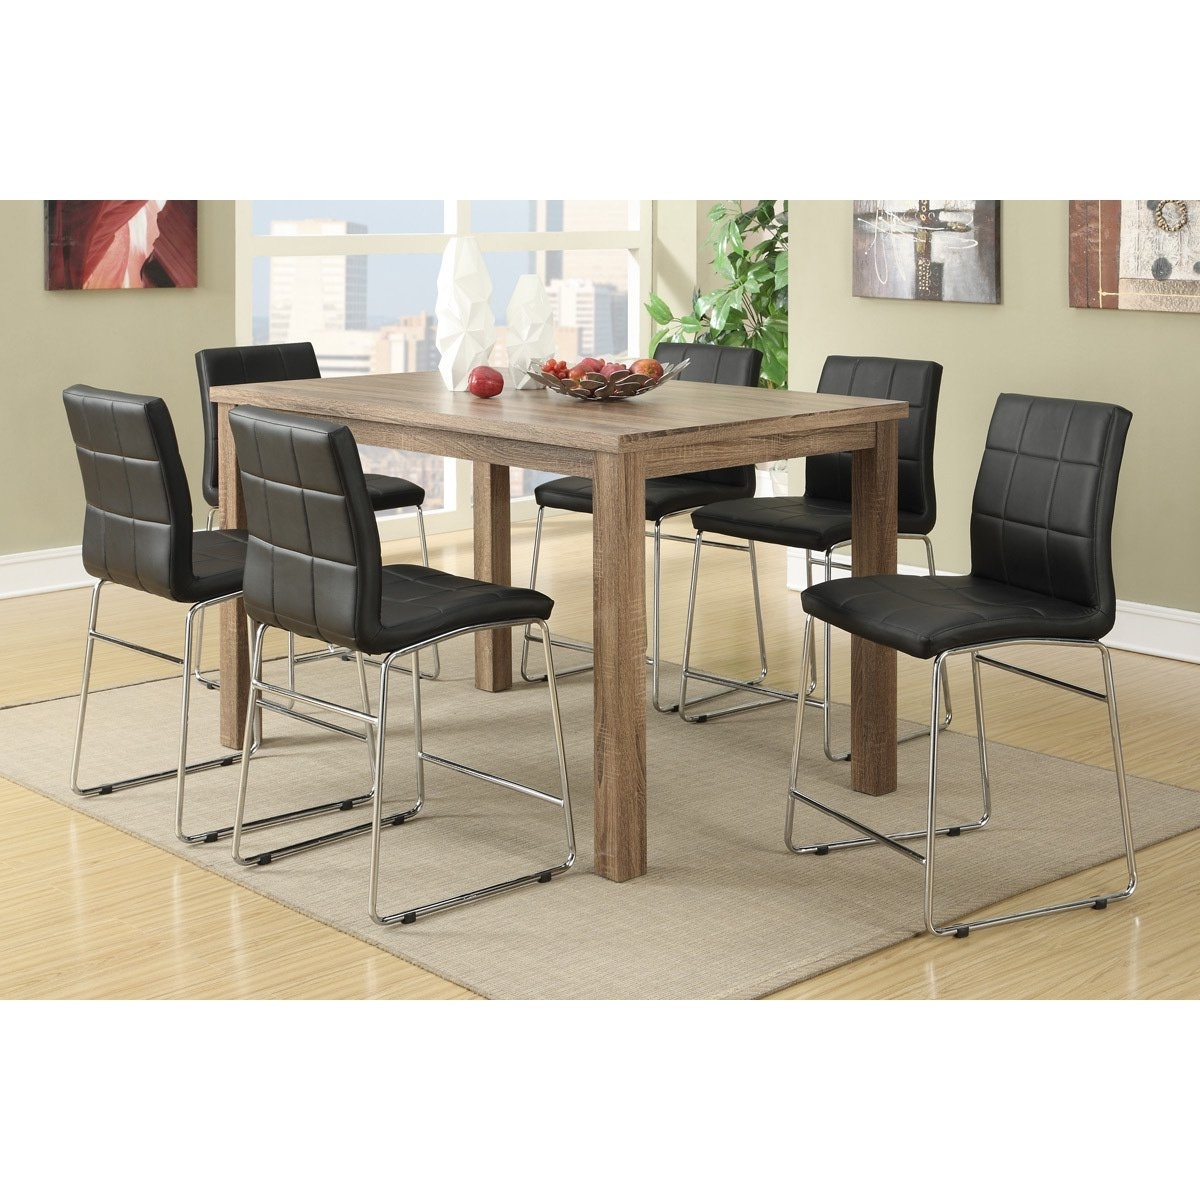 Recent Chandler 7 Piece Extension Dining Sets With Wood Side Chairs with Shop Chandler 7-Piece Counter Height Dining Set - Free Shipping